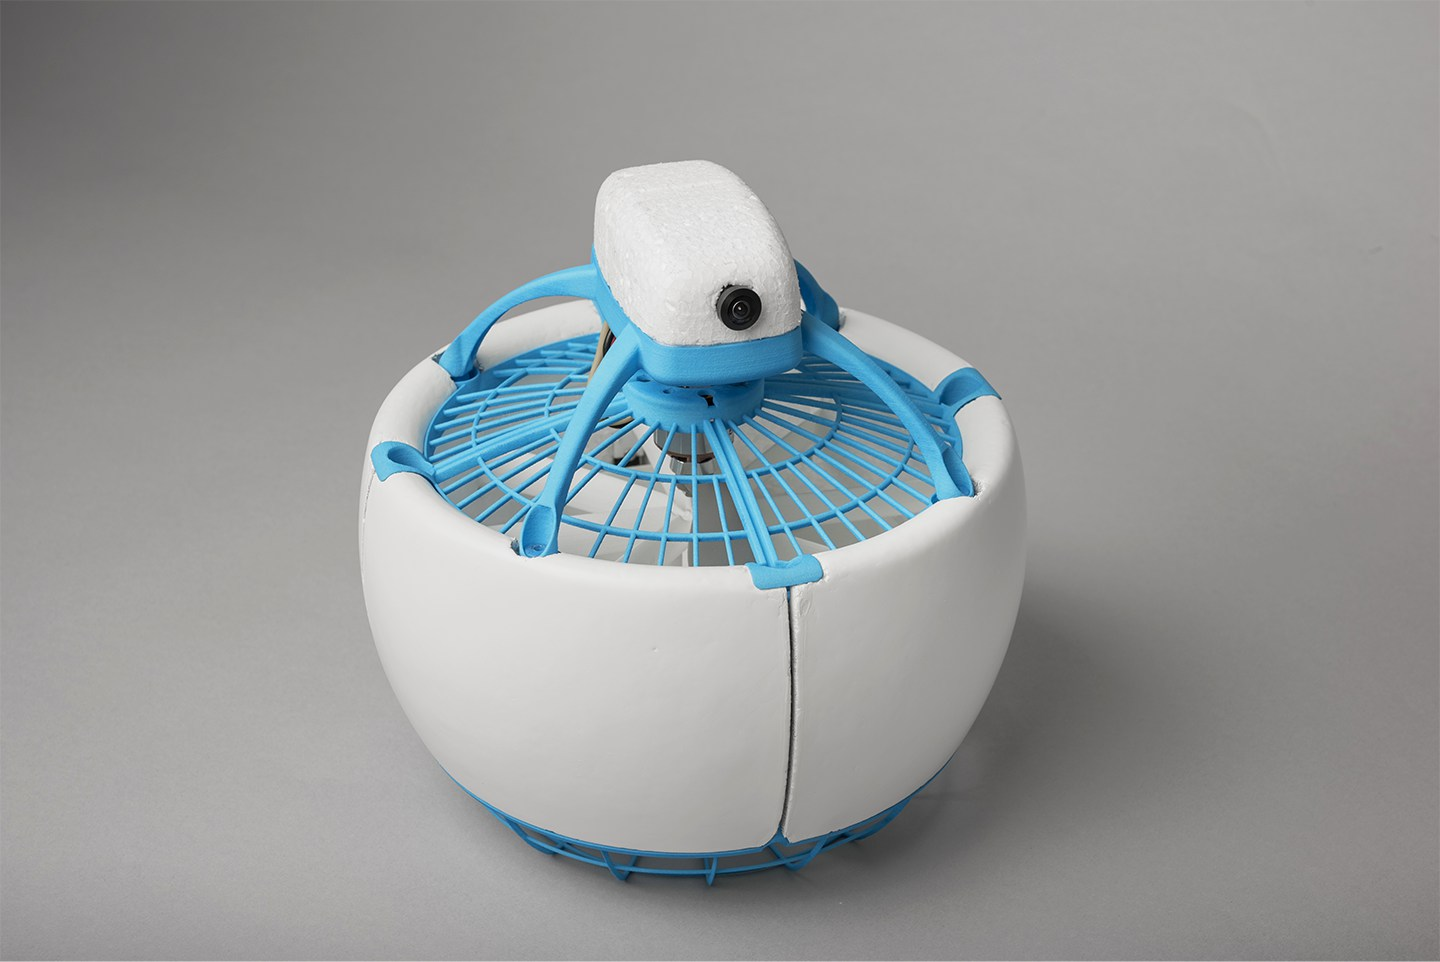 Fleye - the flying robotic camera ball. (Source: Fleye)